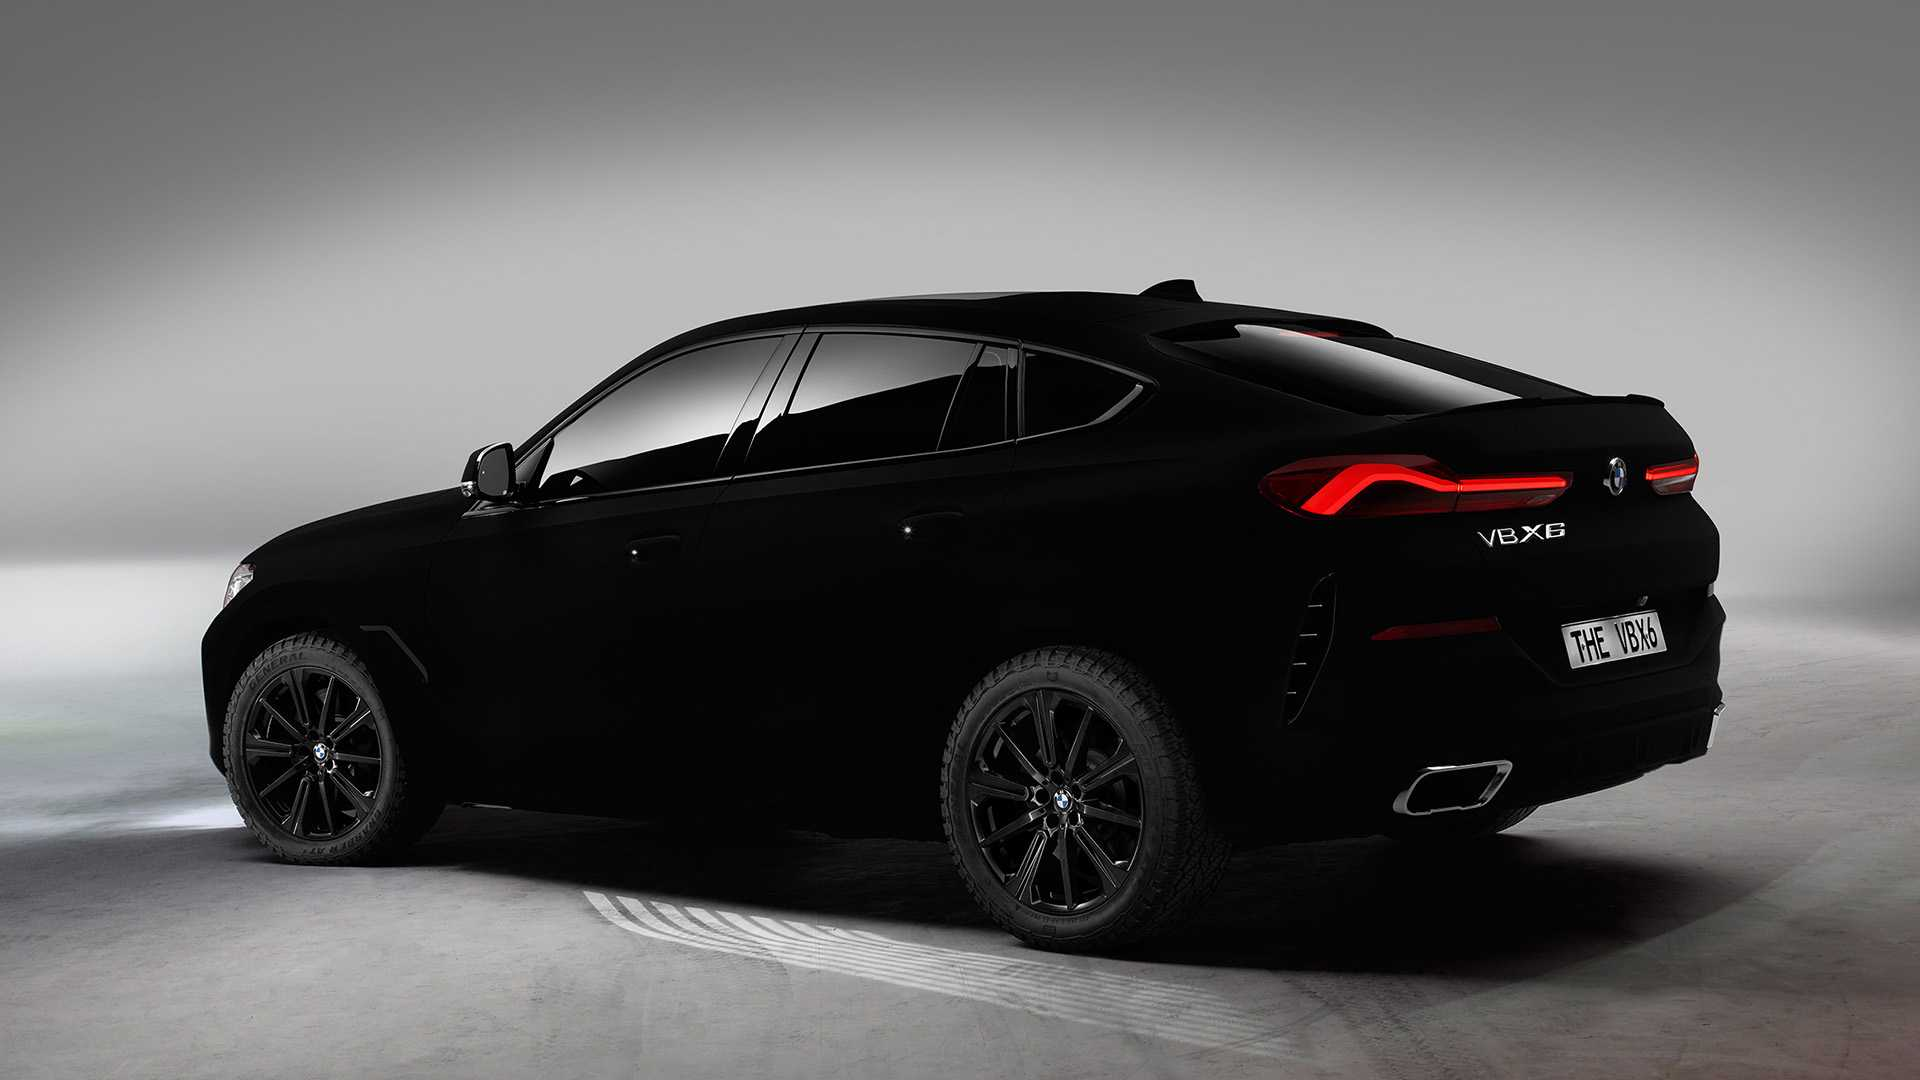 Bmw X6 Vantablack Arrives In World S Darkest Black Color